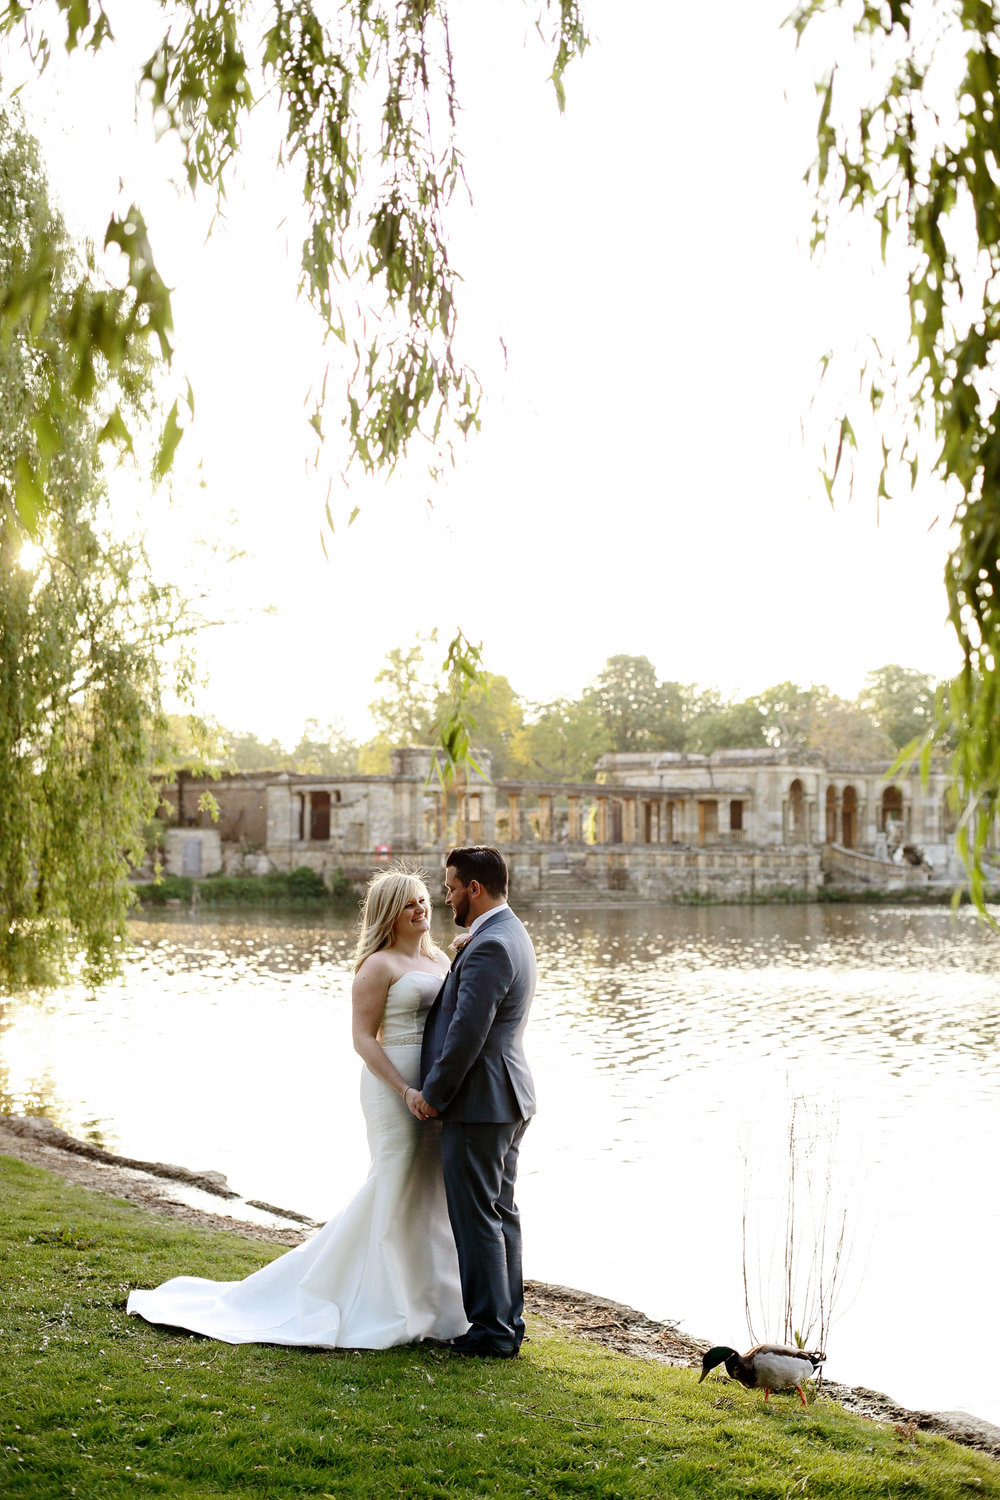 Hever Castle wedding photographer